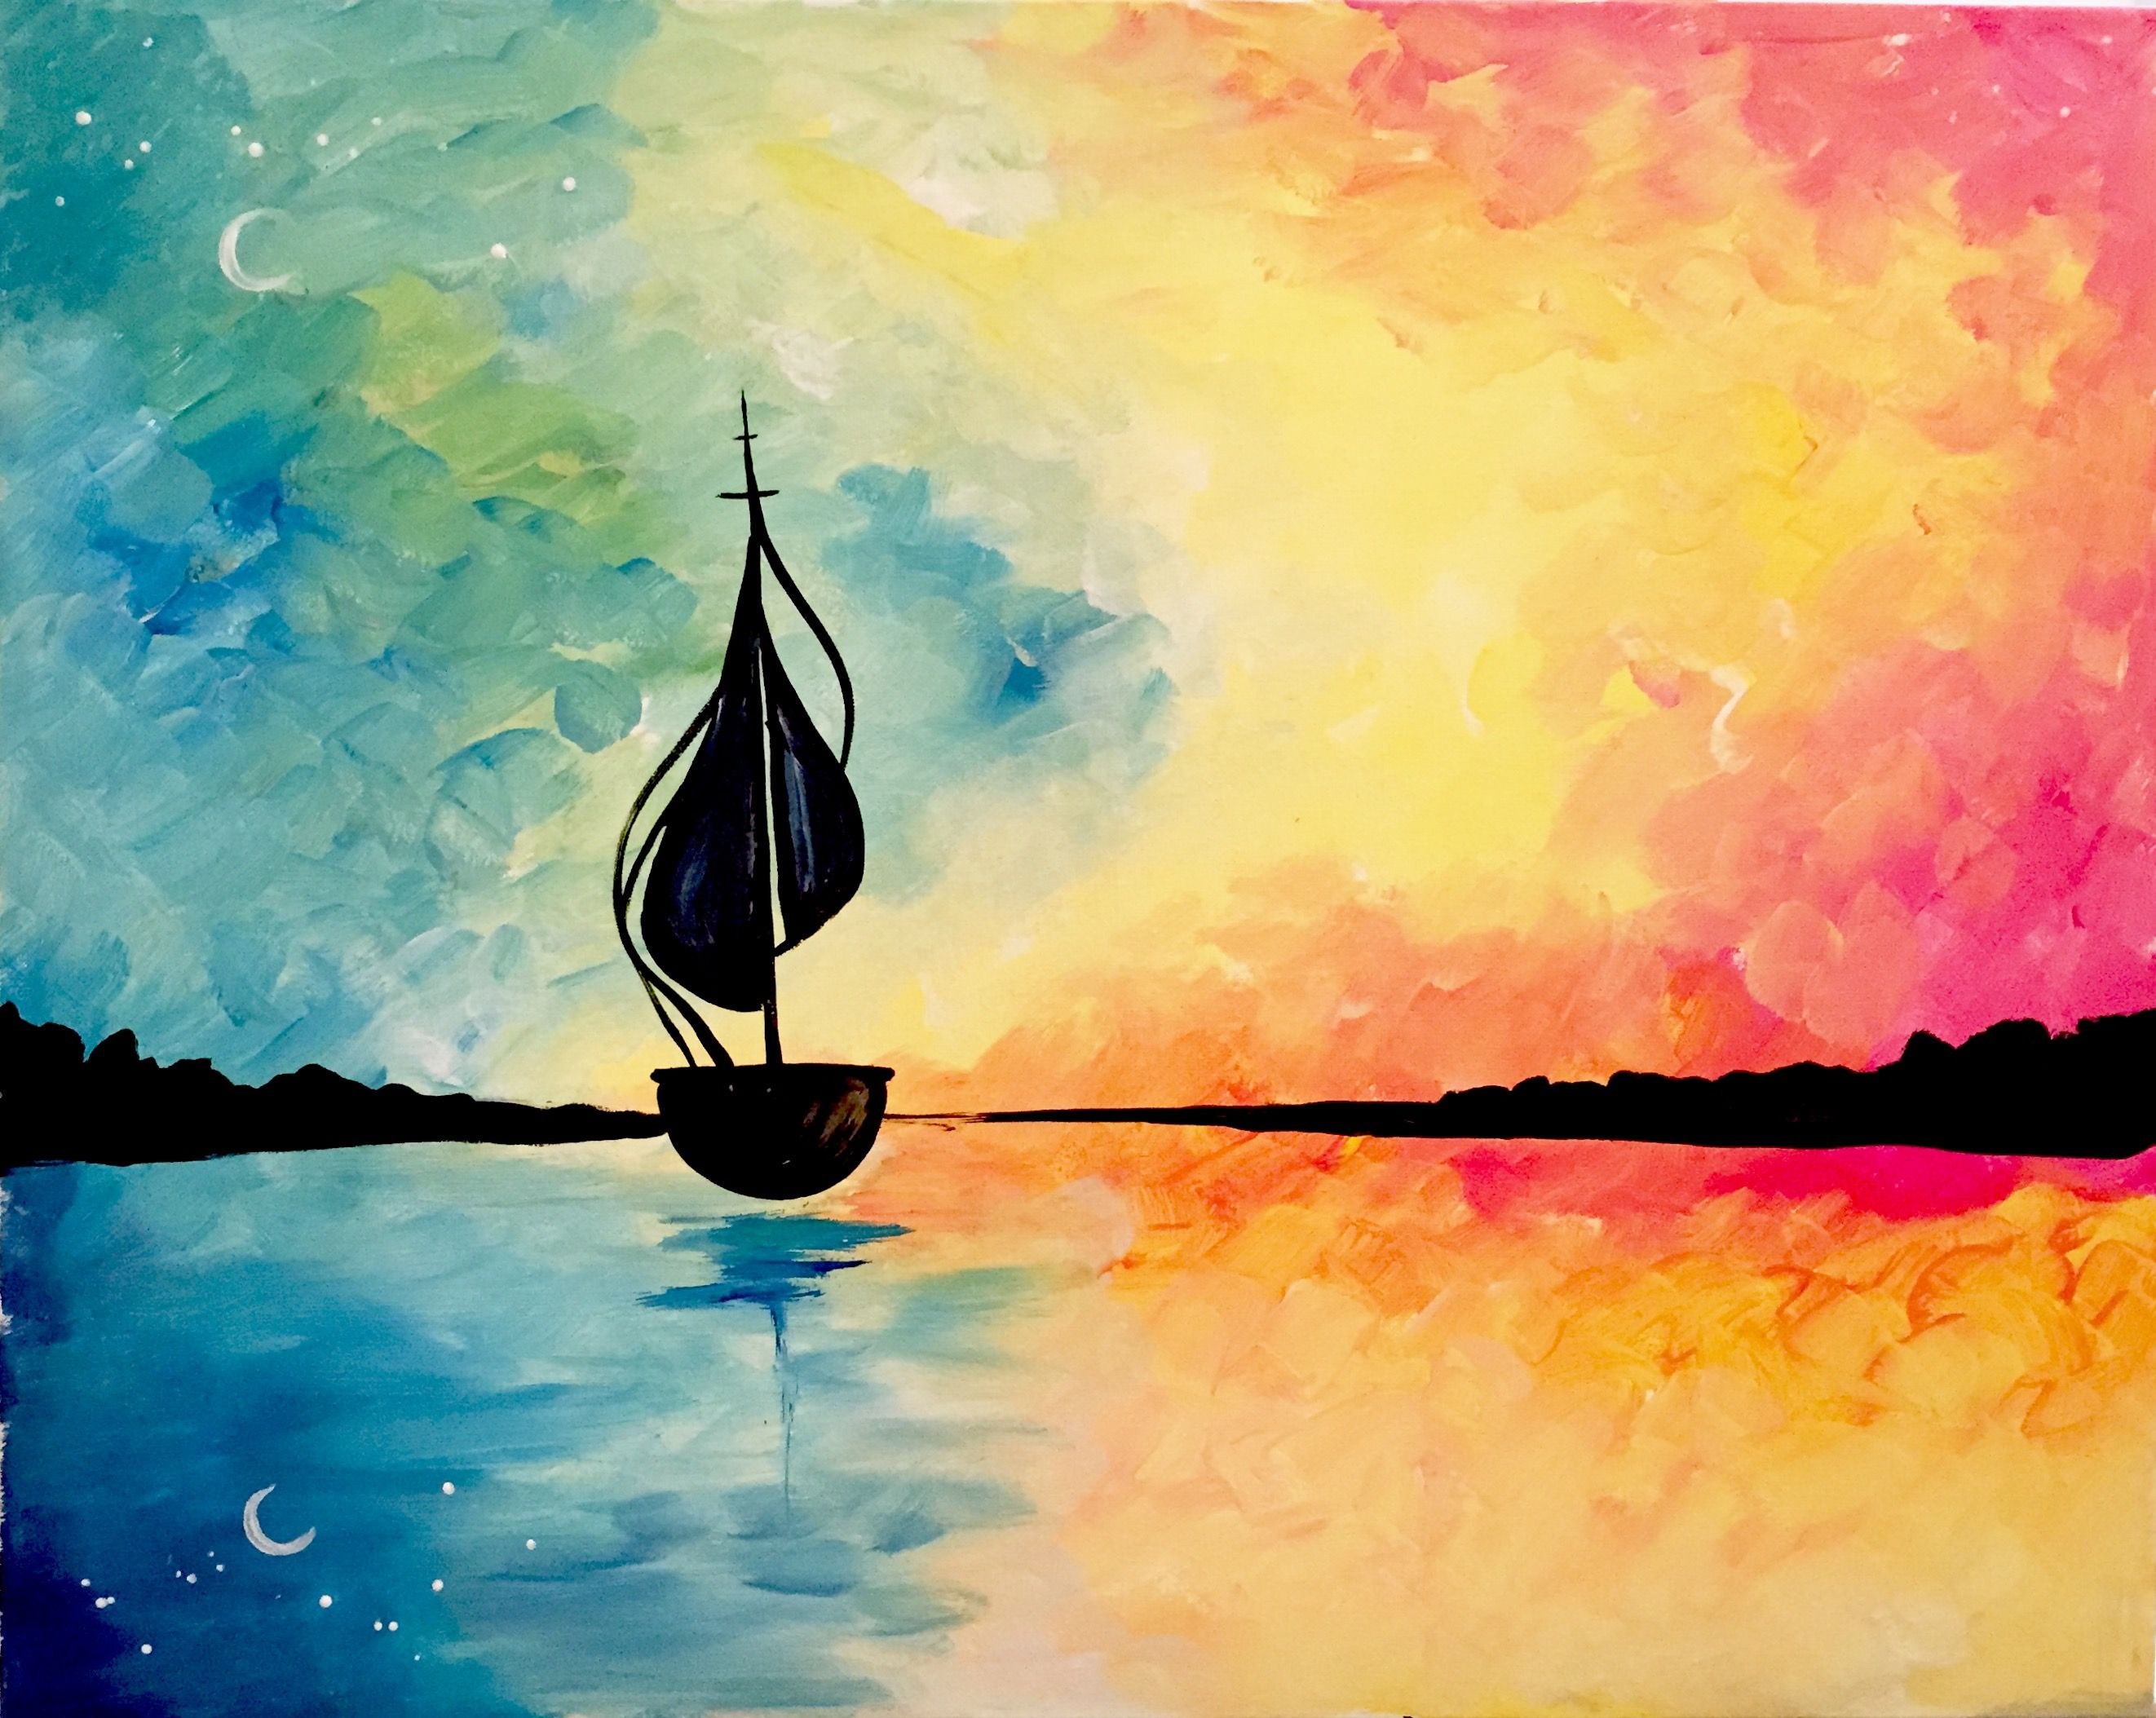 Paint nite drink paint party we host painting events at local bars come join us for a paint nite party